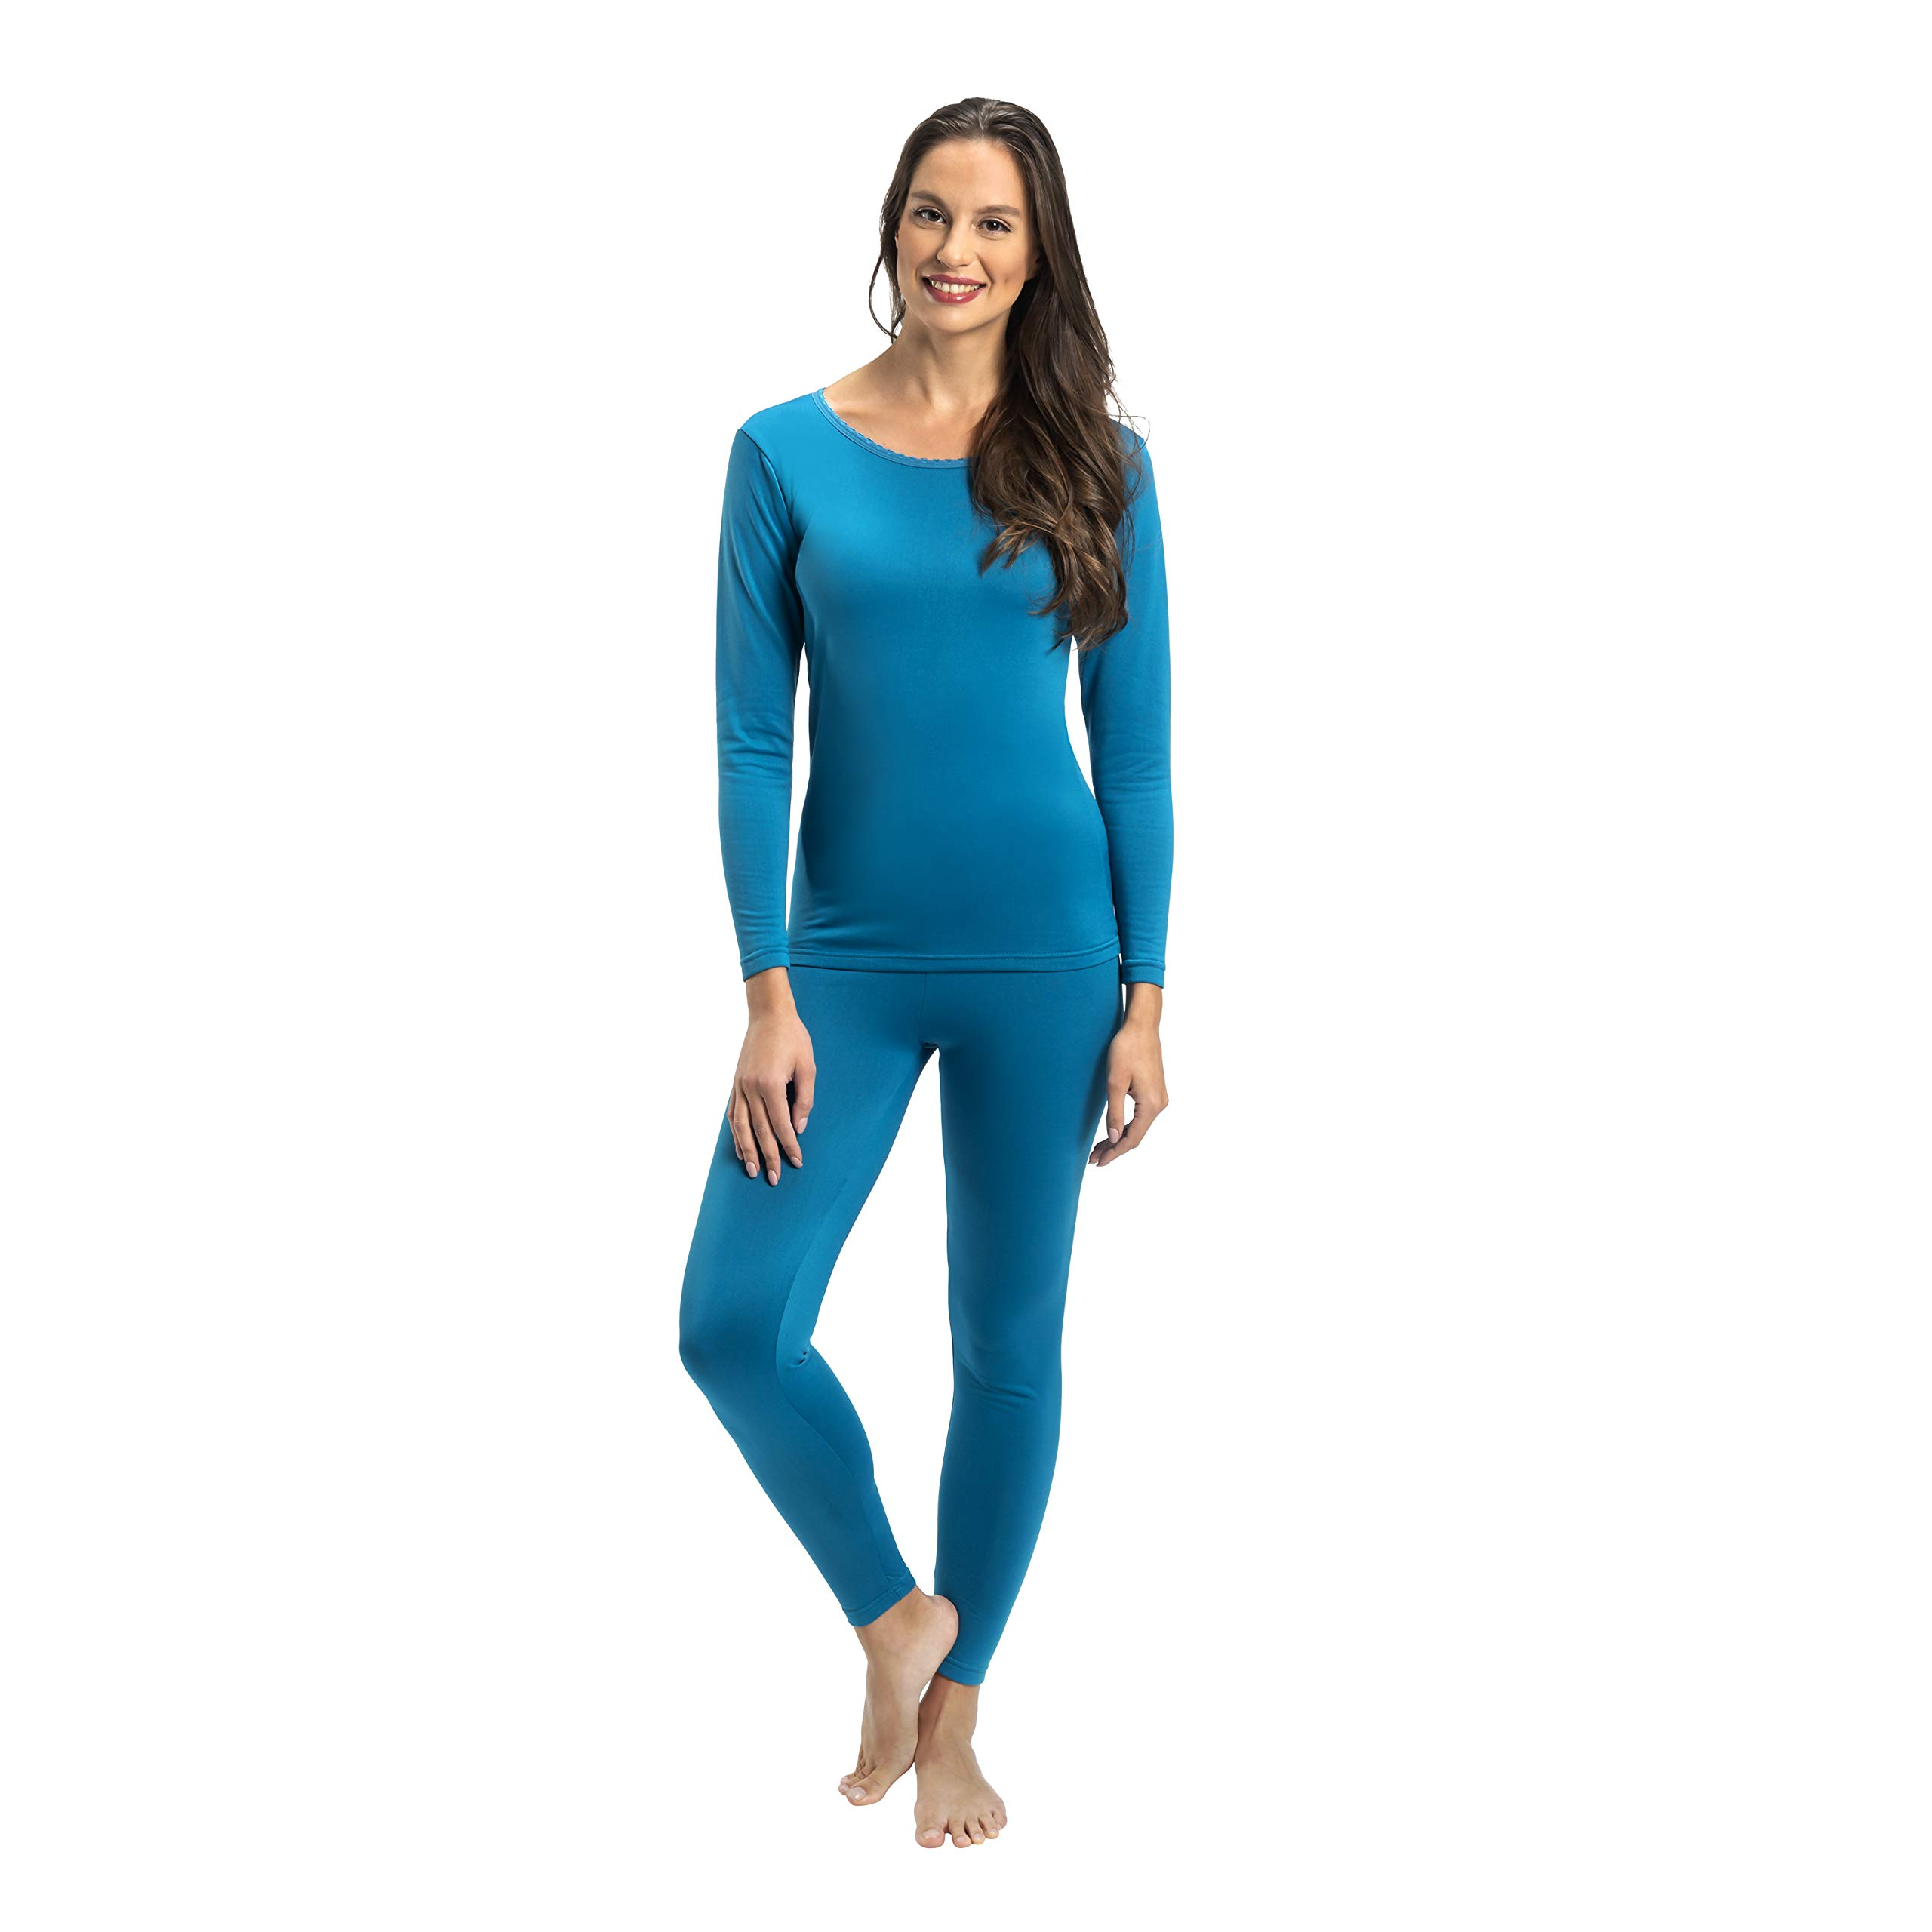 Rocky Womens Thermal 2 Pc Long John Underwear Set Top and Bottom Smooth Knit (XLarge, Teal) by Rocky